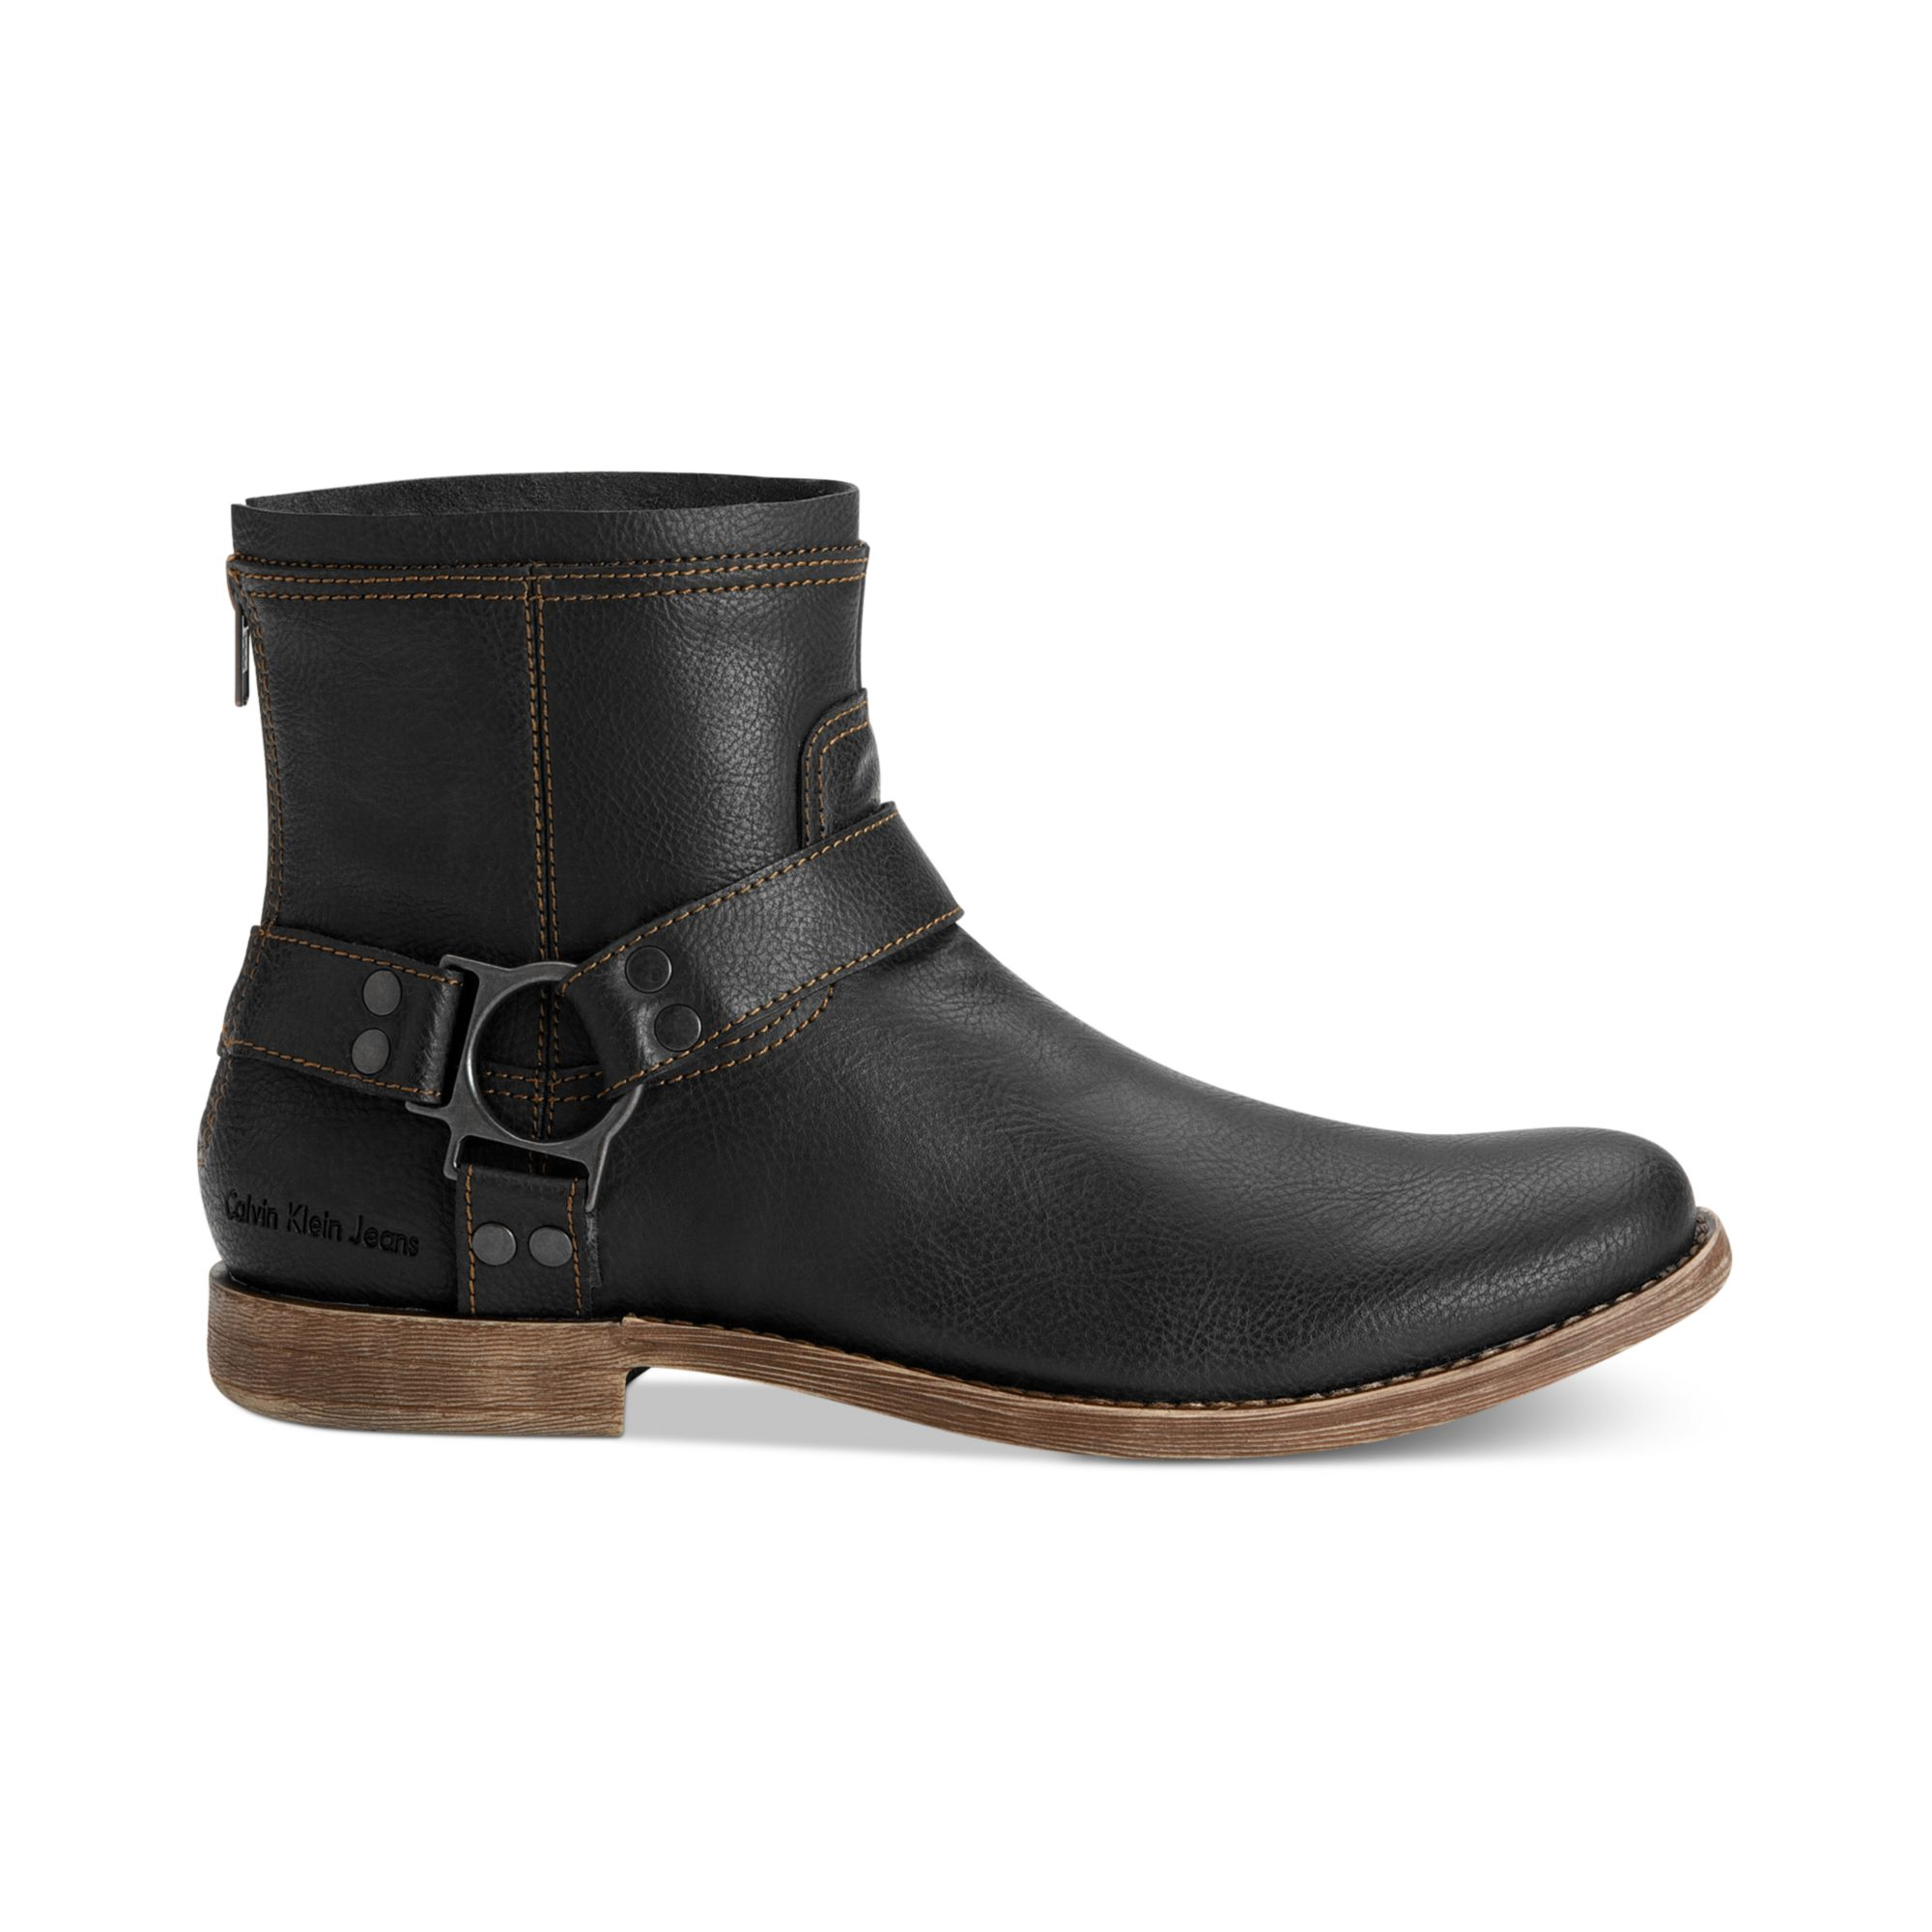 Mens harness boots with jeans